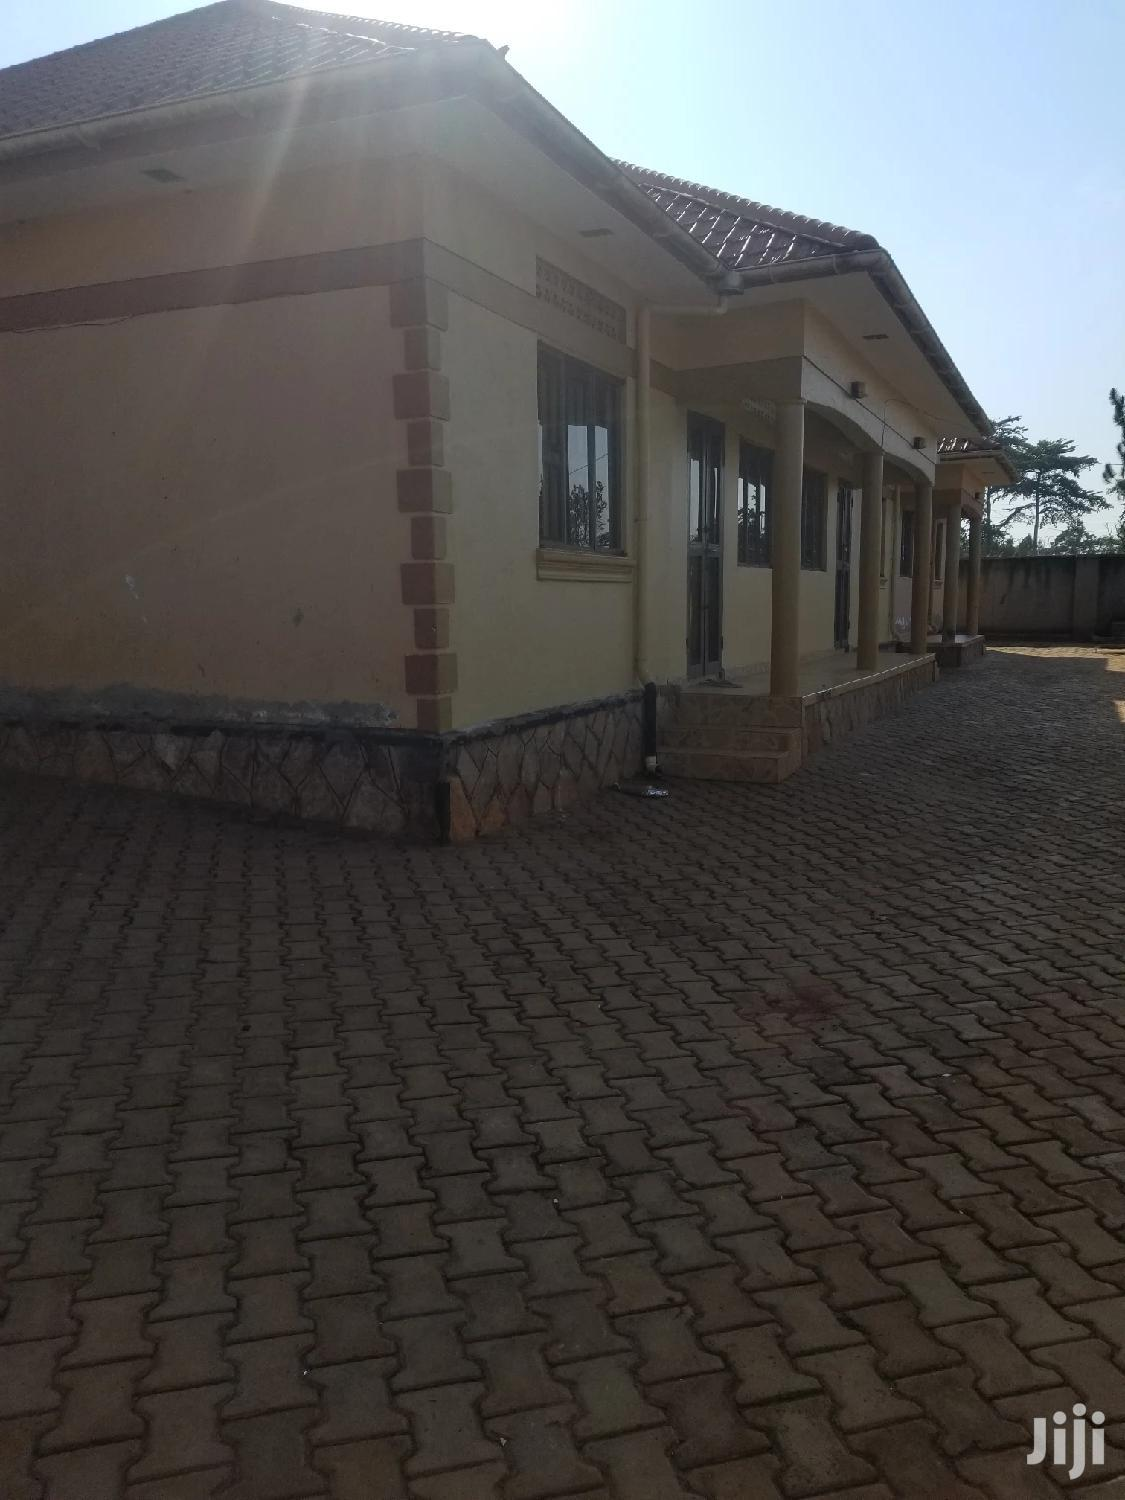 Rentals for Sale Kira With Ready Land Title | Houses & Apartments For Sale for sale in Kampala, Central Region, Uganda